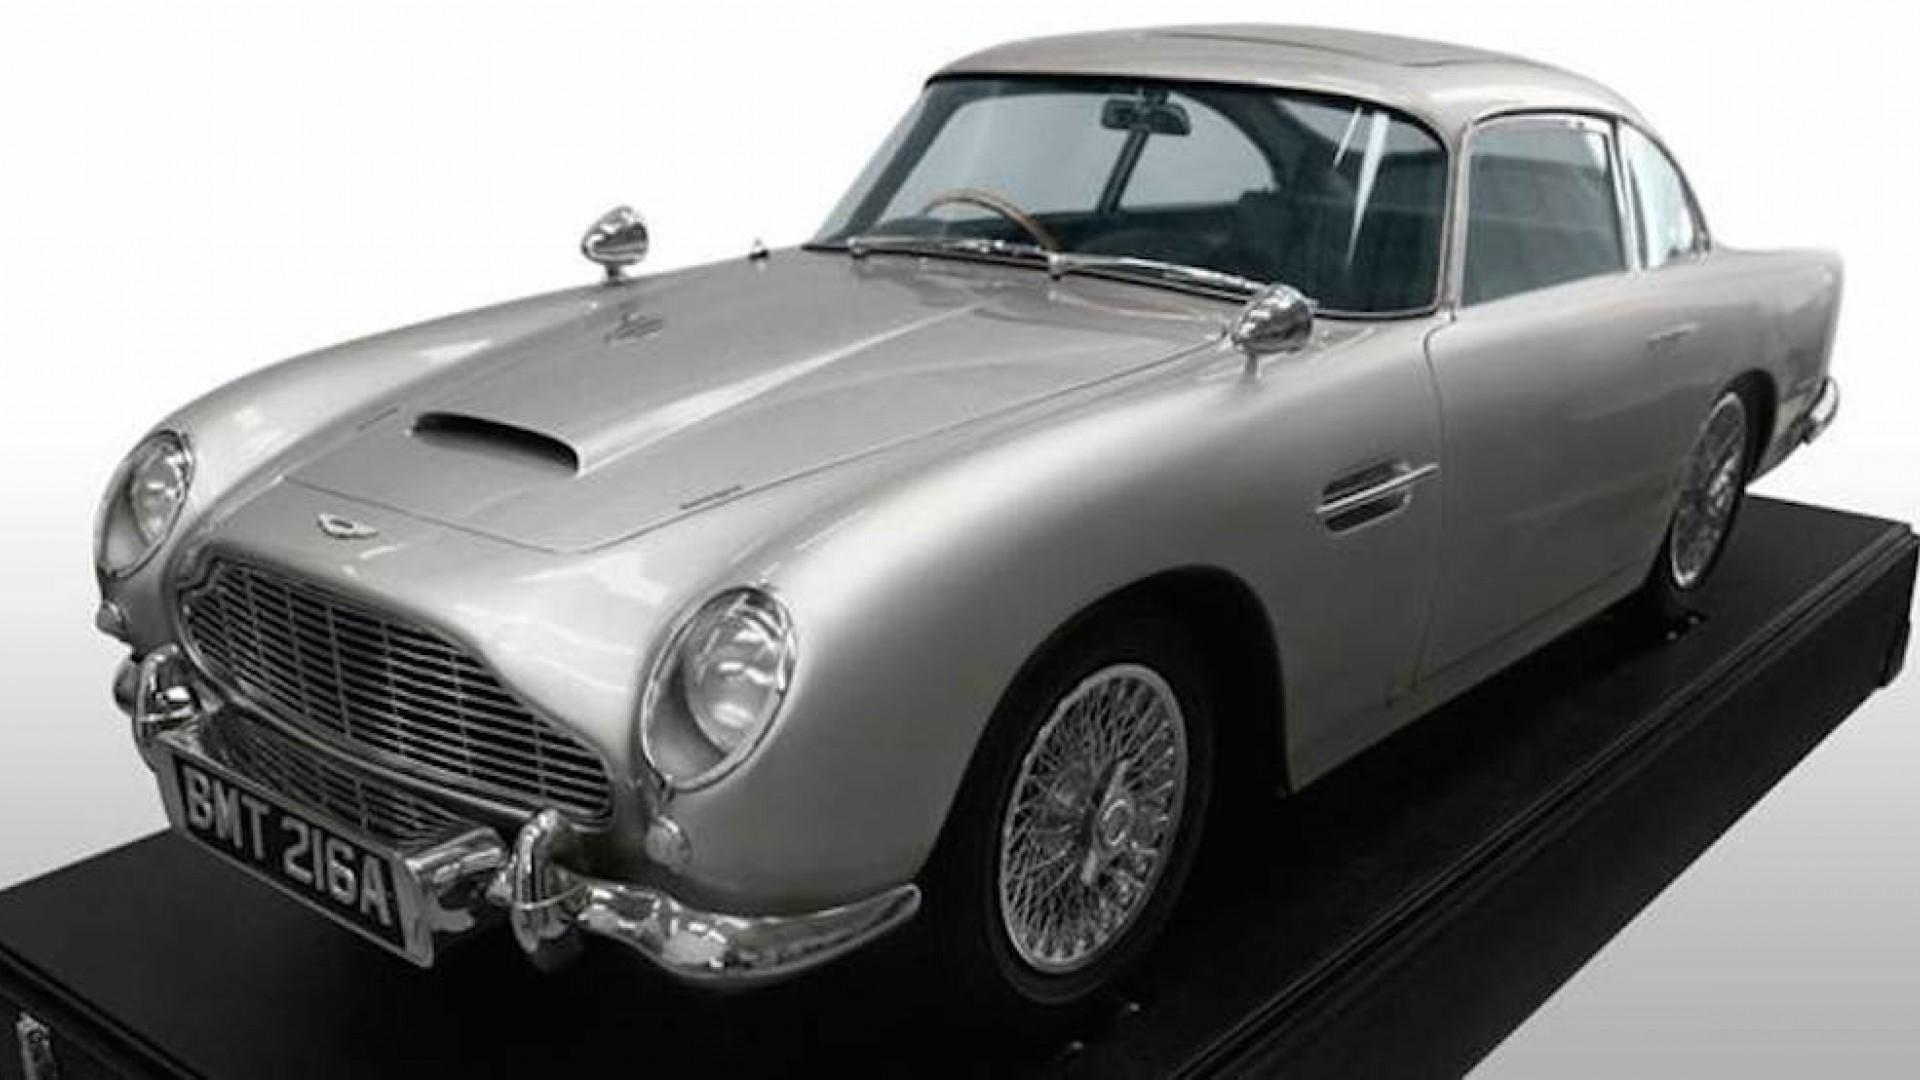 A one-third scale model DB5 (Skyfall)